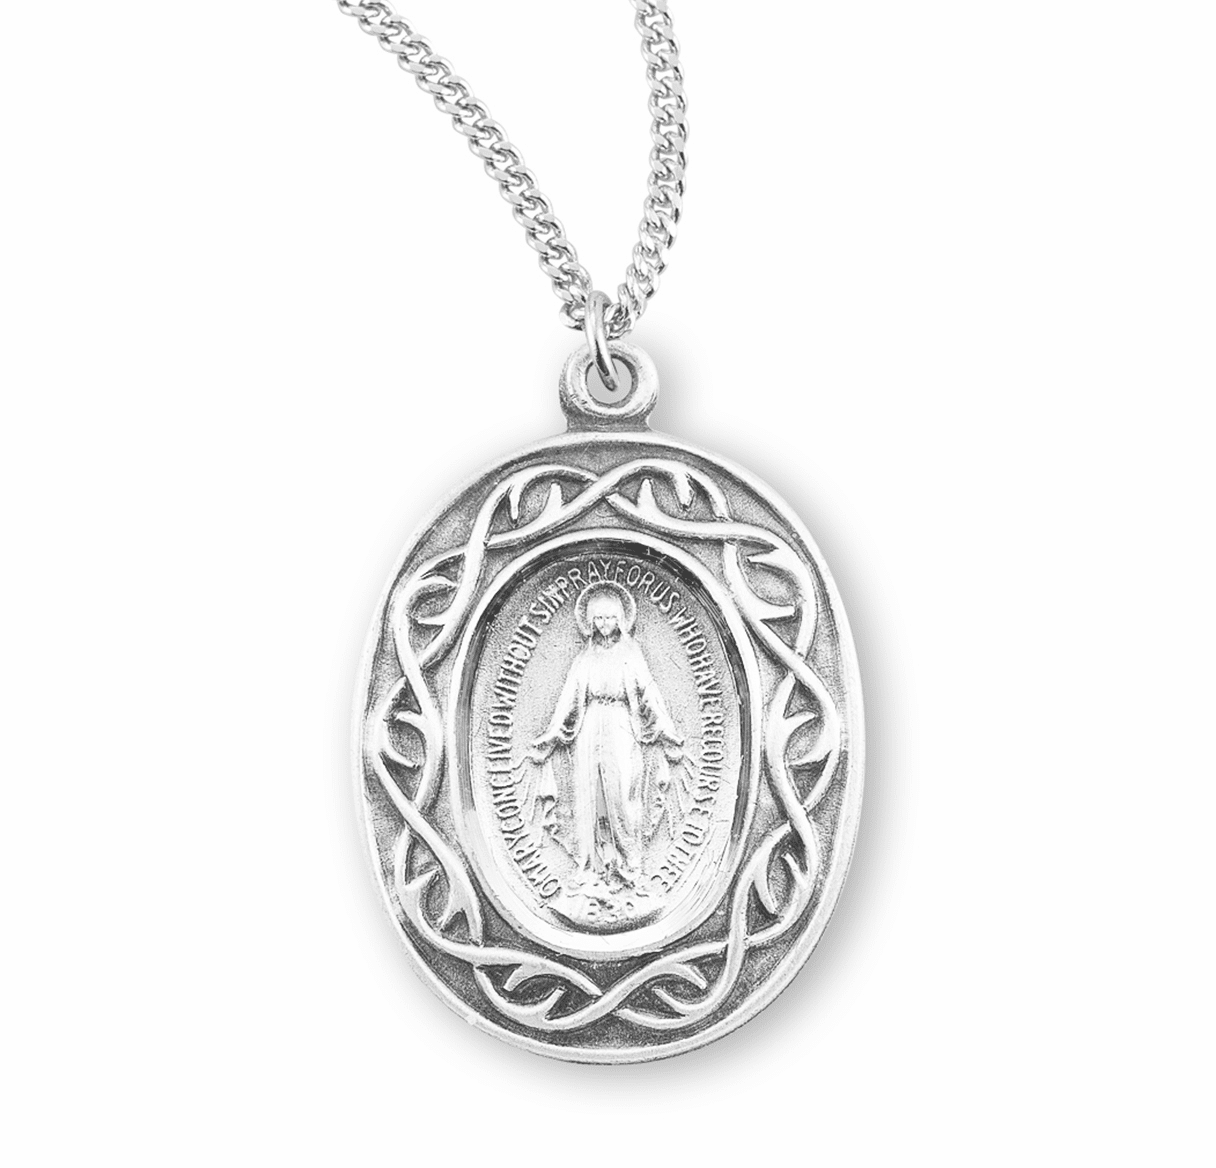 Miraculous Medal Crown of Thorns Necklace by HMH Religious